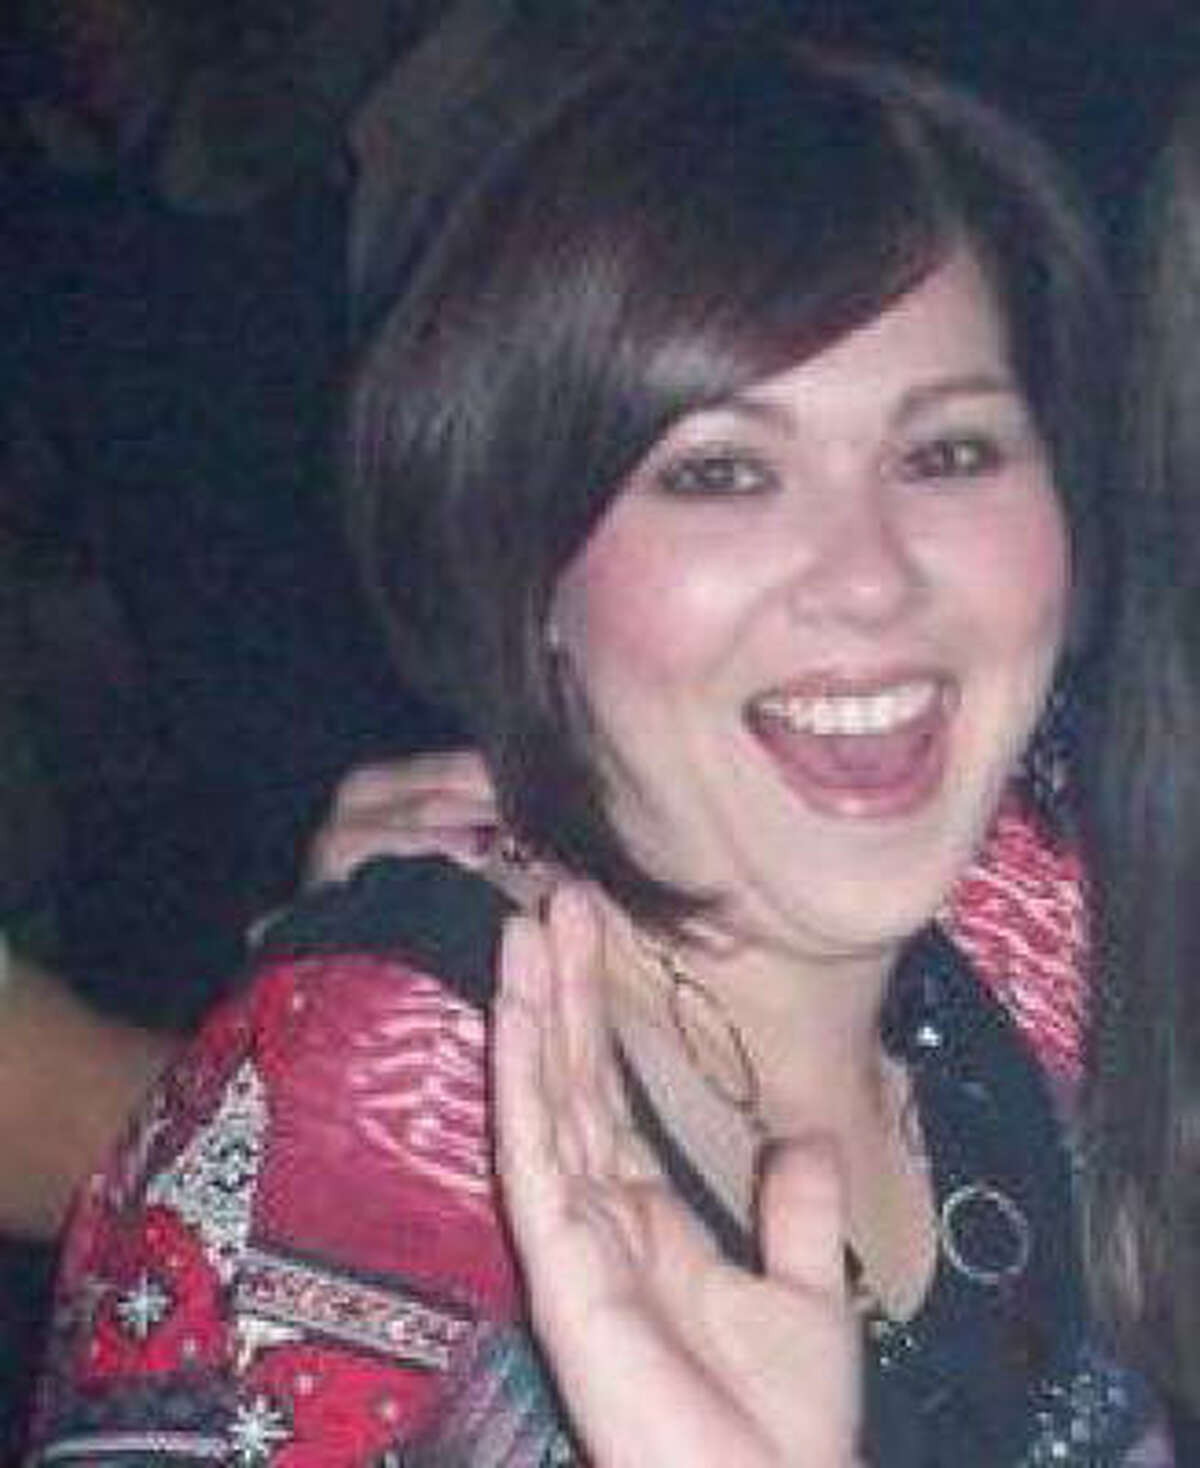 Susana De Jesus, 37, was abducted at gunpoint on Feb. 2 by a man who forced her into her 2008 Cadillac at a Pearland shopping center.